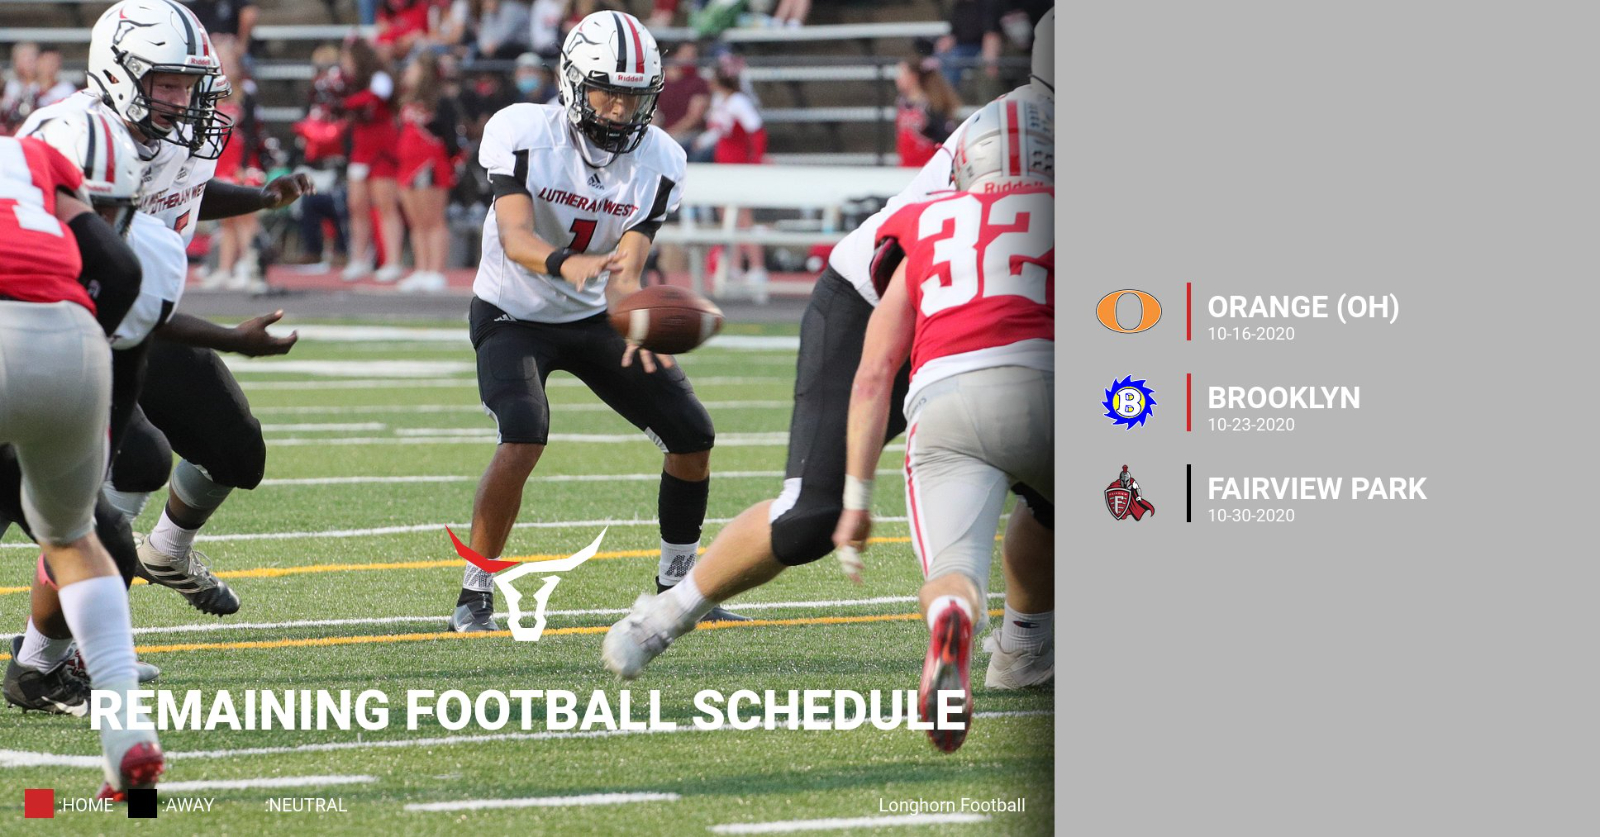 Football 2020 Remaining Schedule